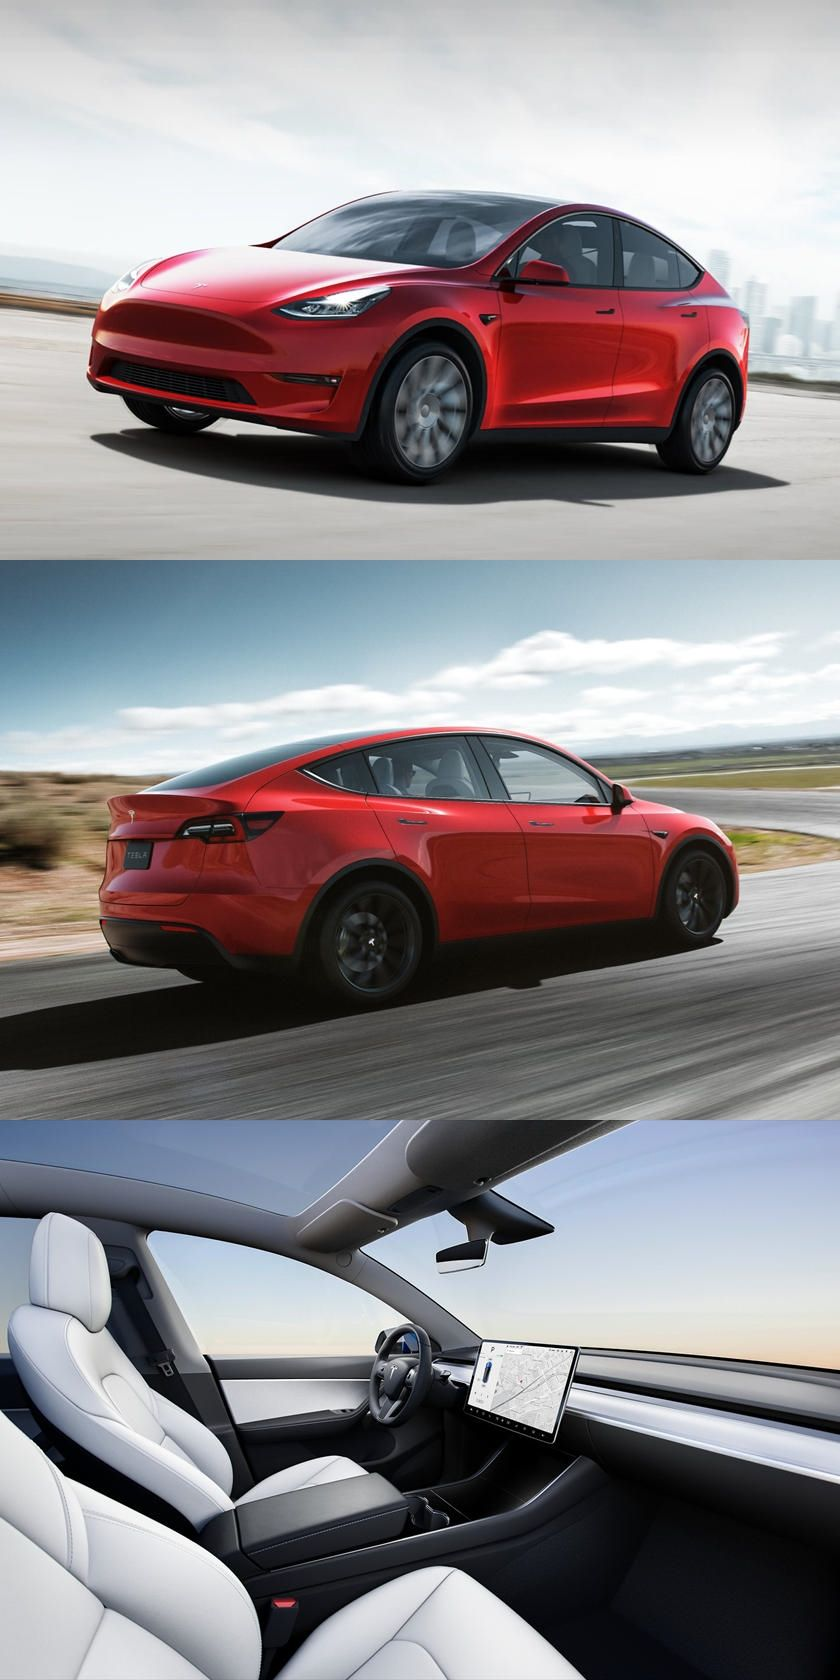 Tesla Model Y Deliveries Start This Week One Customer Says They Ve Scheduled Their Model Y Delivery For March 11 Tesla Model Tesla Tesla Roadster